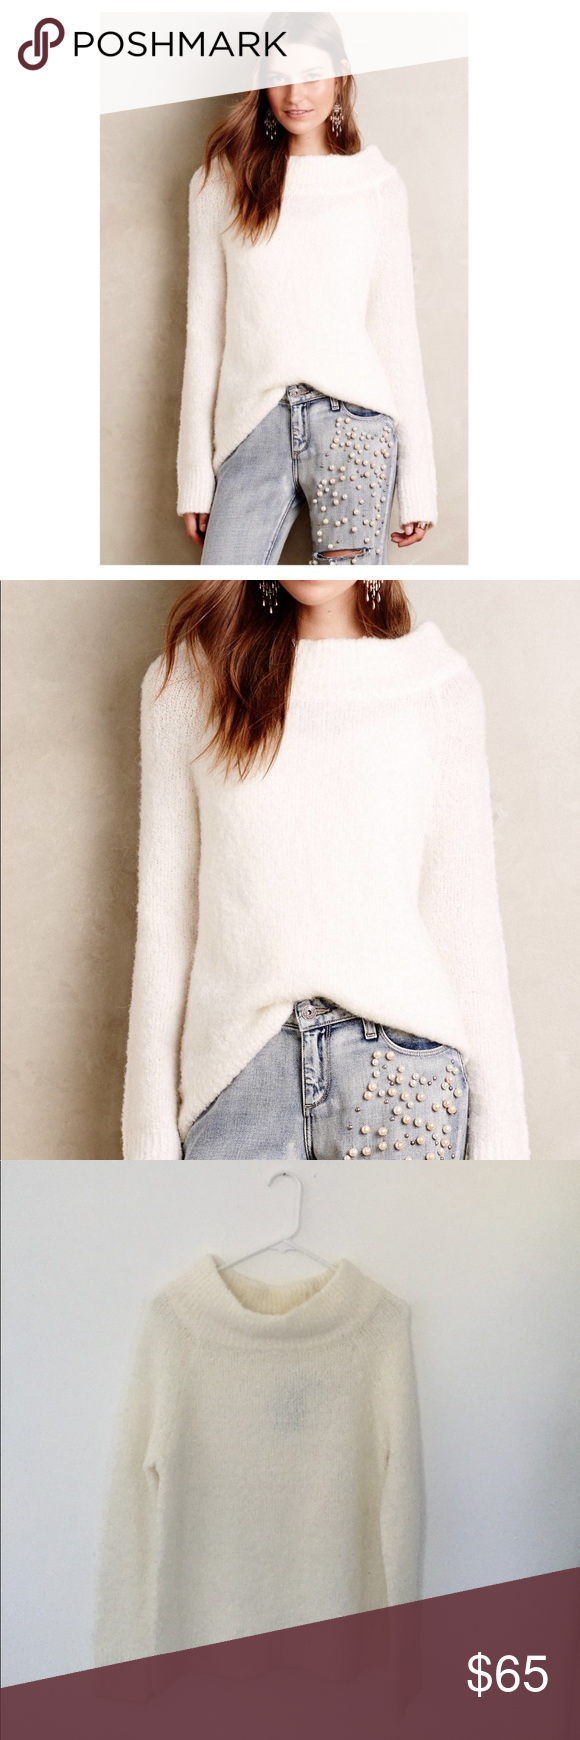 Anthropologie Moth Cowl Neck Sweater in Ivory NWT | Cowl neck ...